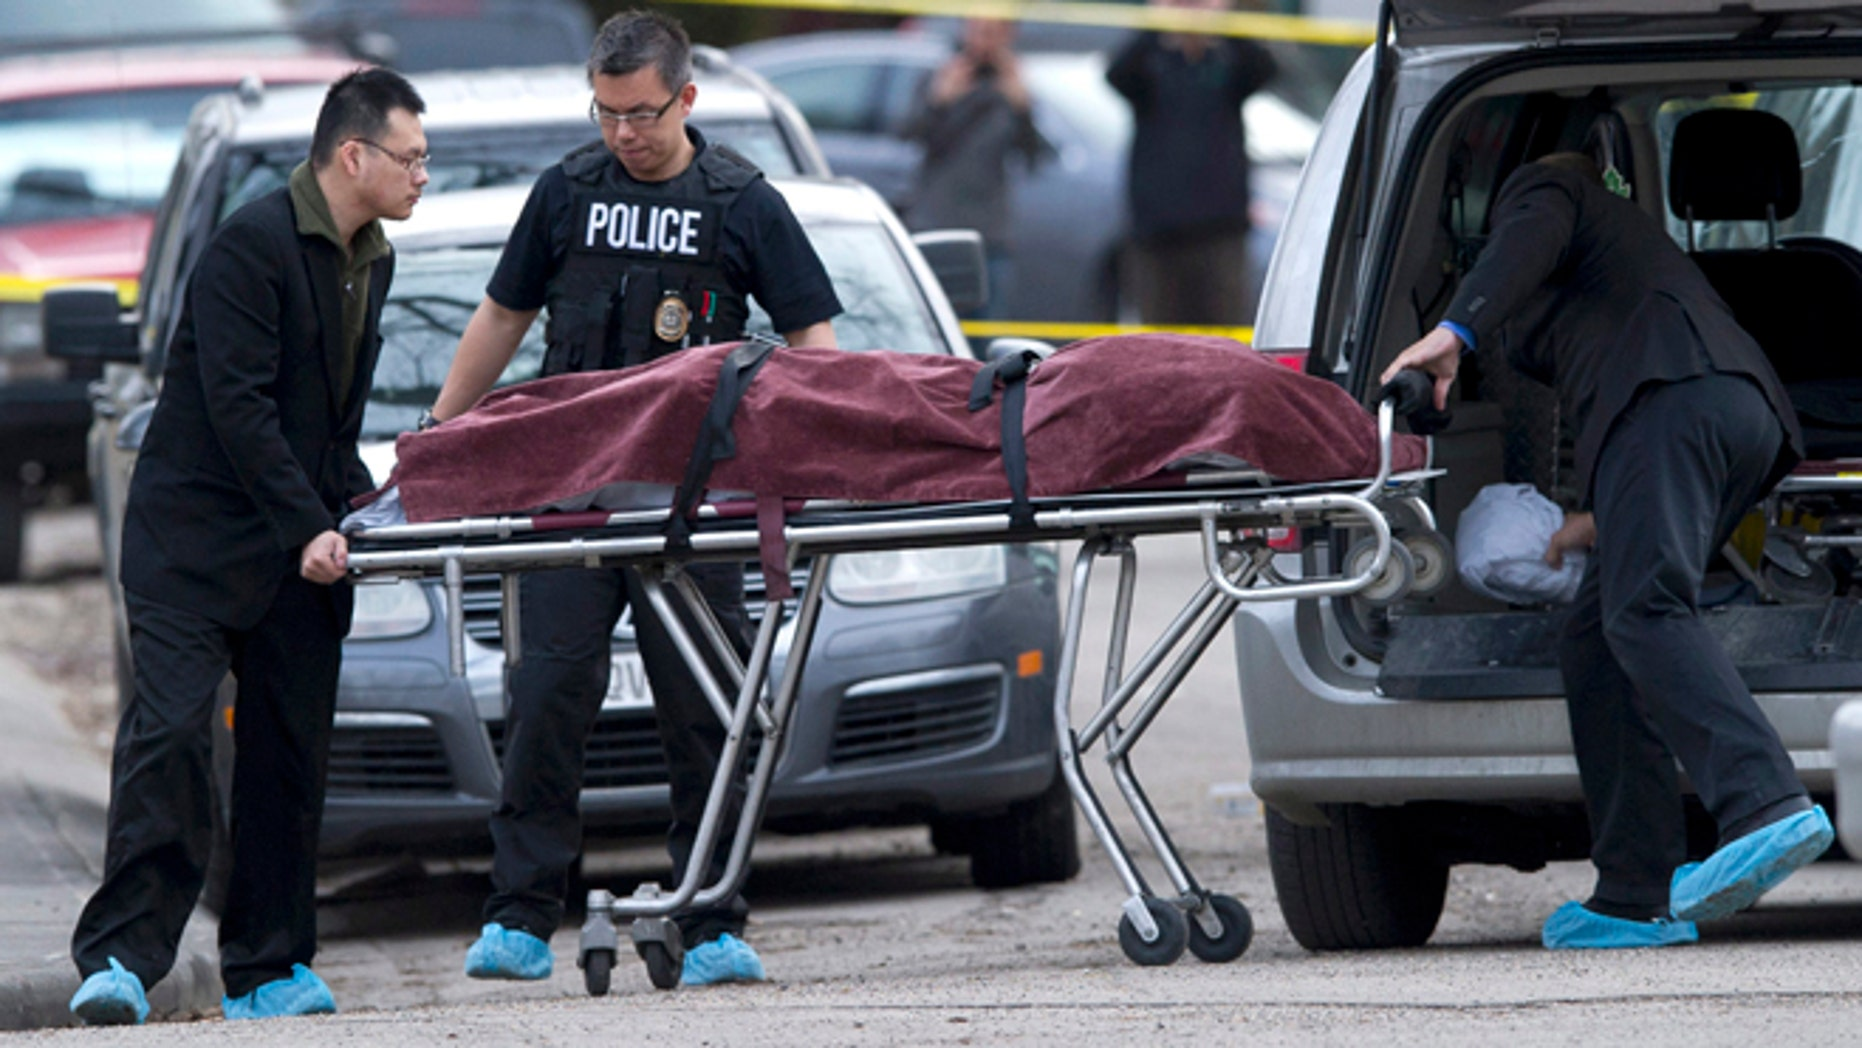 April 15, 2014: Police remove a body from the scene of a multiple fatal stabbing in northwest Calgary, Alberta.